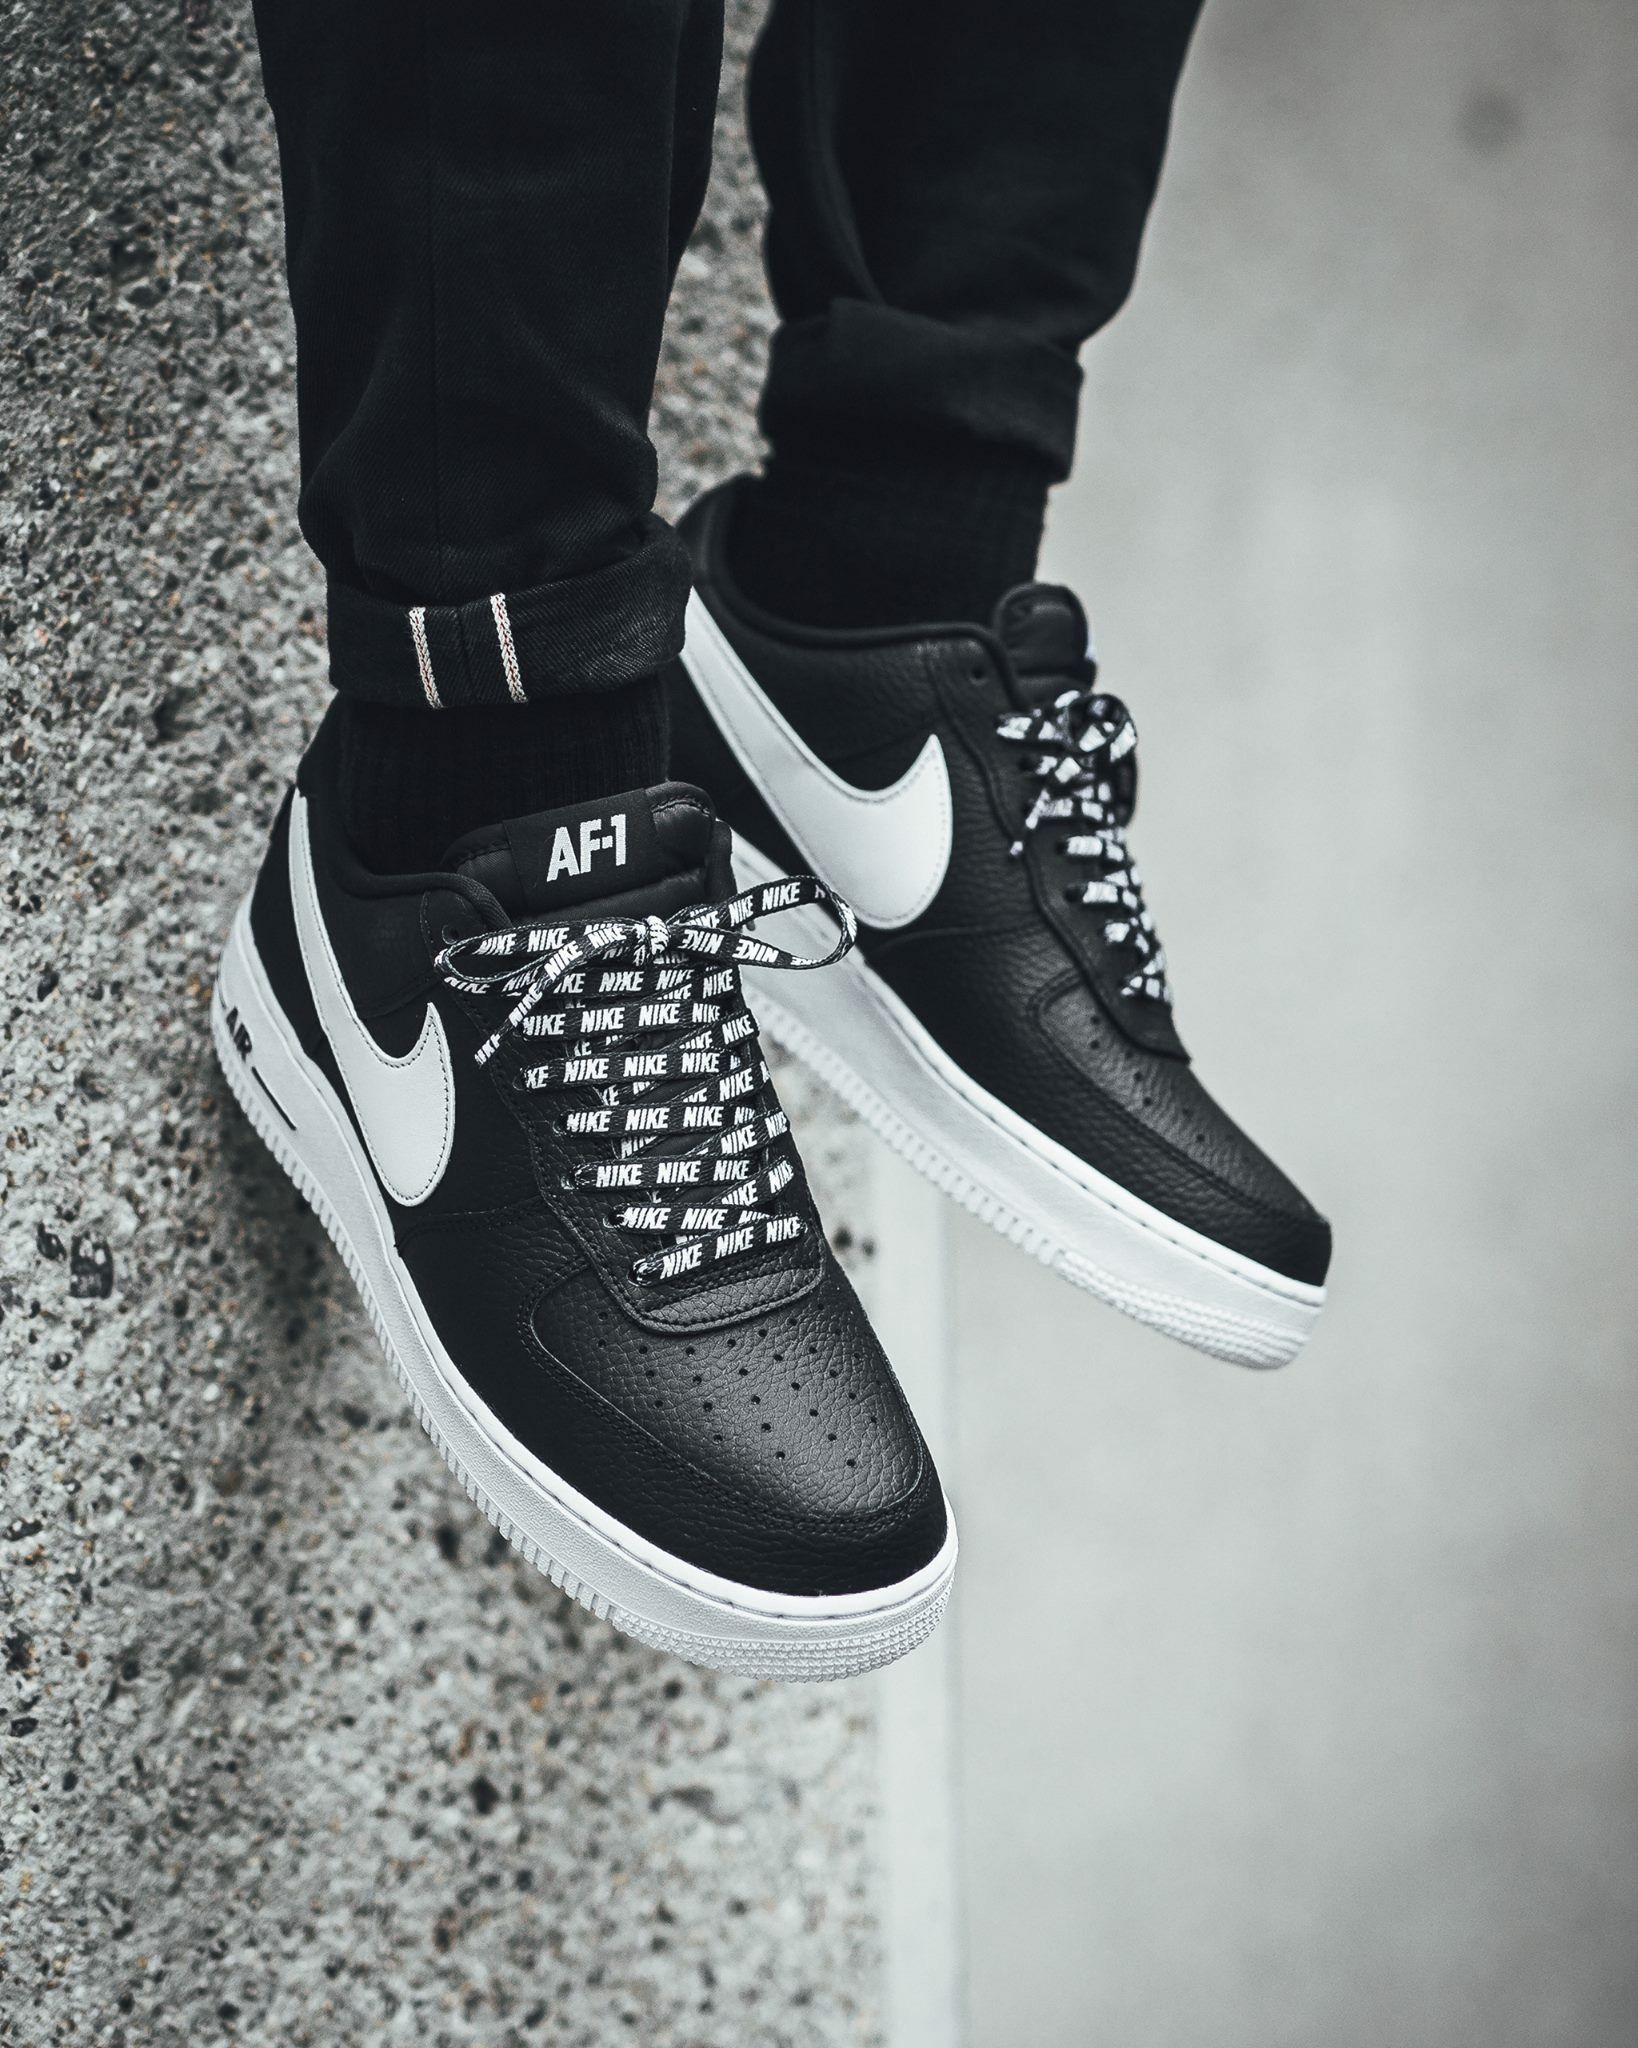 premium selection 8076a 4fbe4 Nike Air Force 1